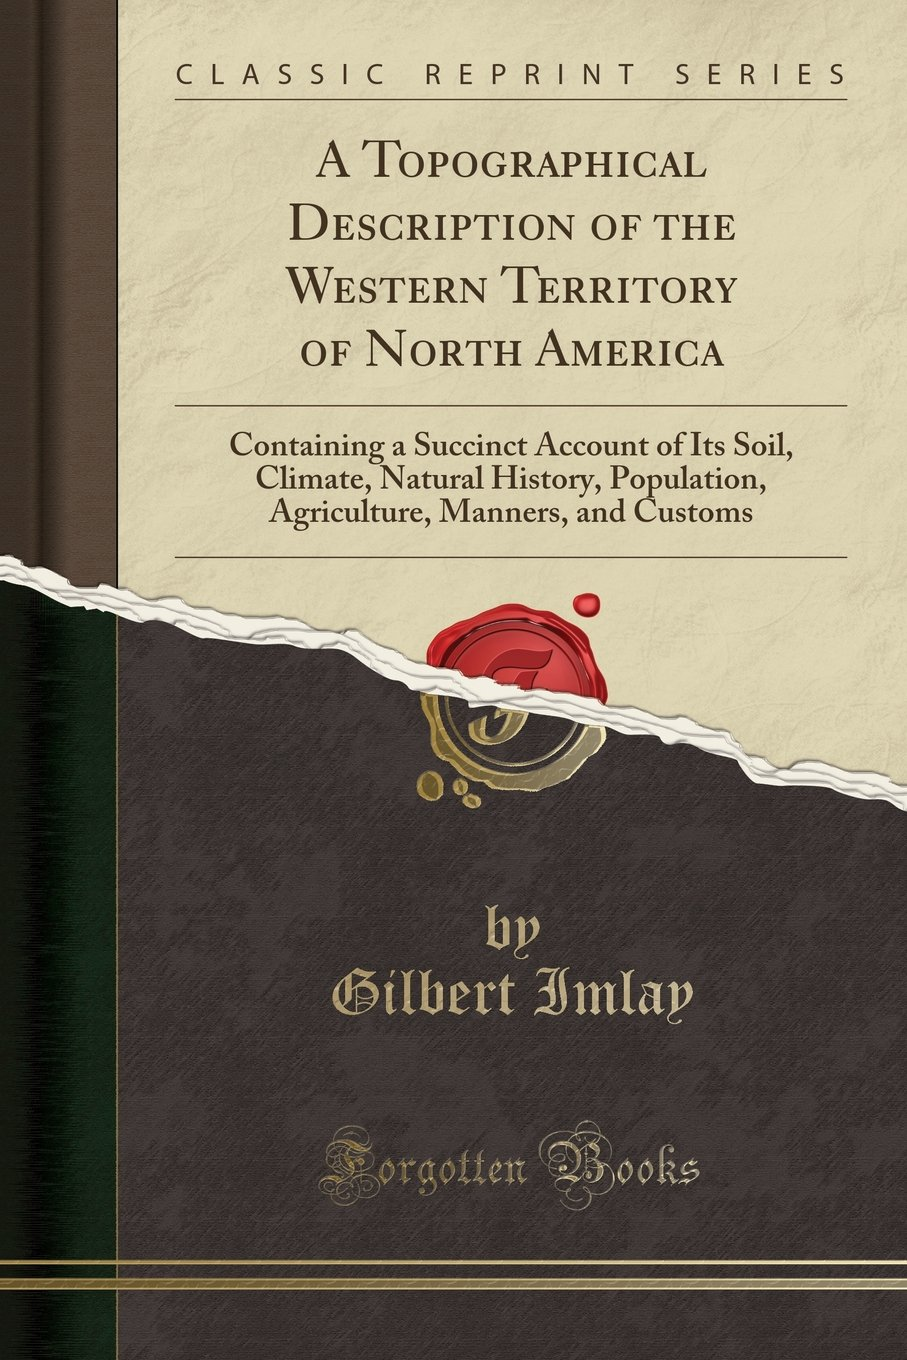 Download A Topographical Description of the Western Territory of North America: Containing a Succinct Account of Its Soil, Climate, Natural History, ... Manners, and Customs (Classic Reprint) pdf epub